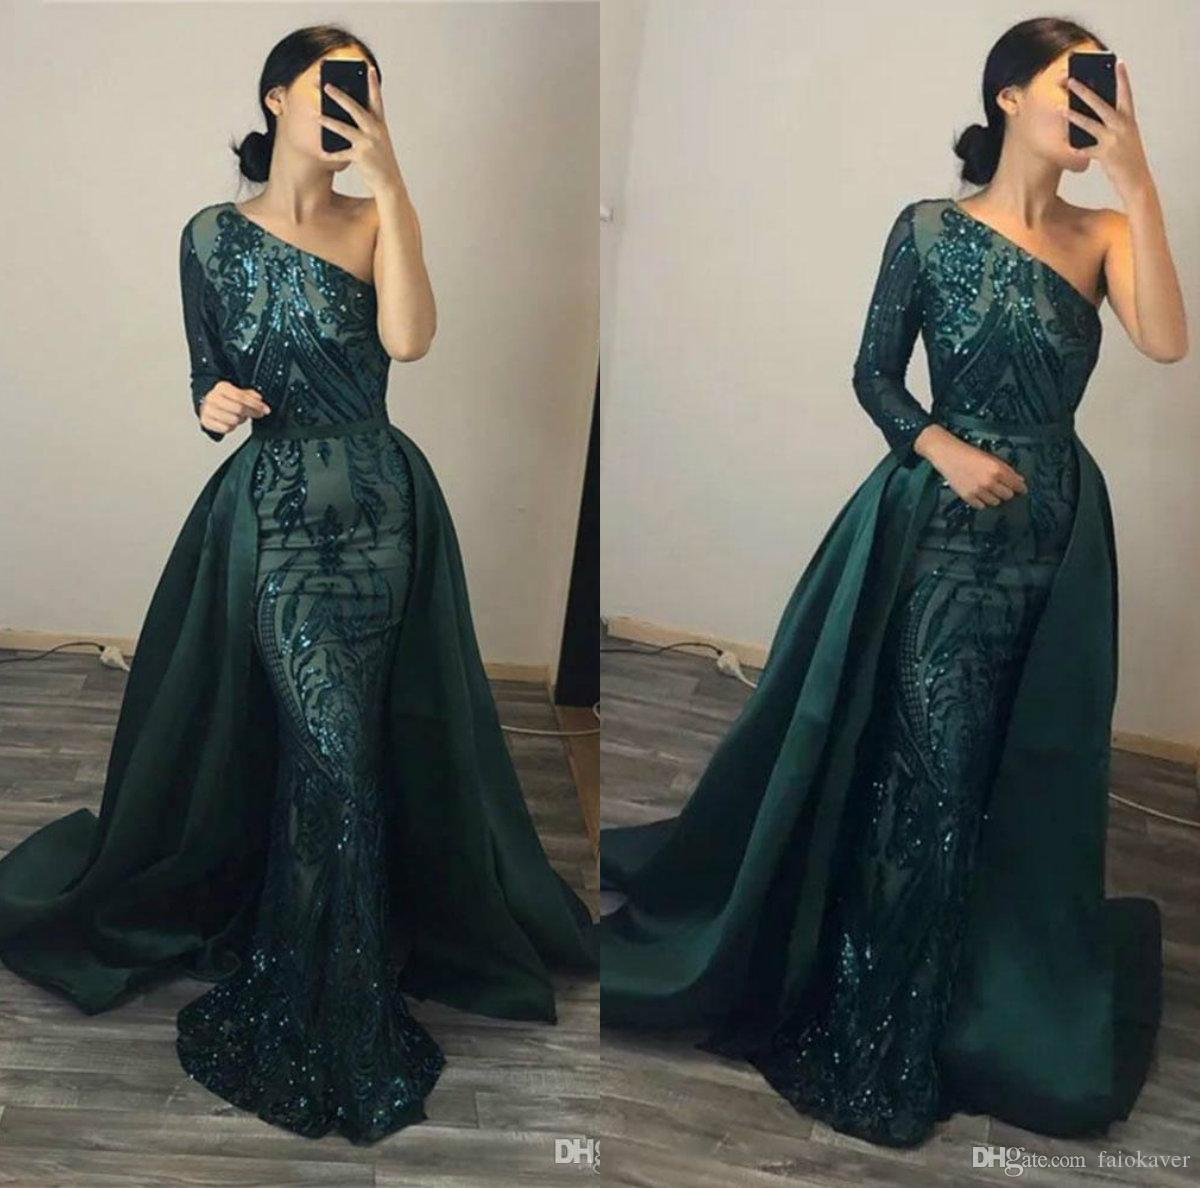 Hunter Green Sparkly Sequined Evening Dresses Long Sleeves One Shoulder Overskirt Prom Dresses Custom Made Mermaid Formal Gowns